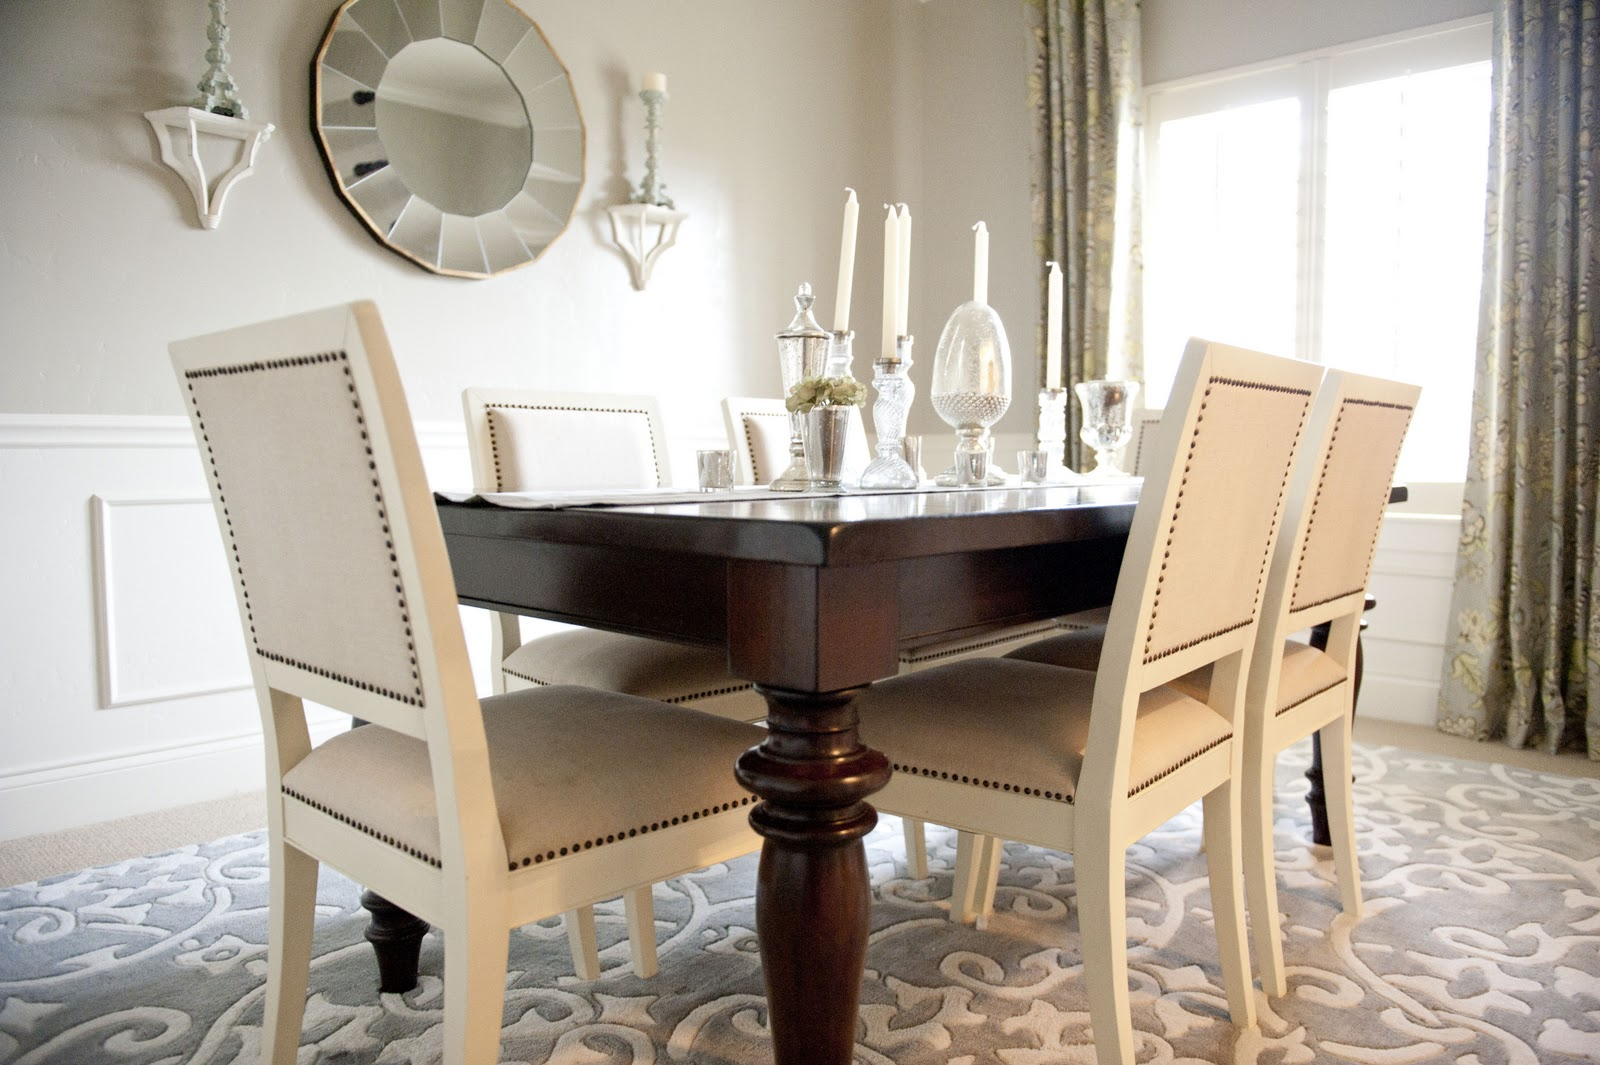 Sita montgomery interiors my home tour entry and dining room for Dining room entrance designs